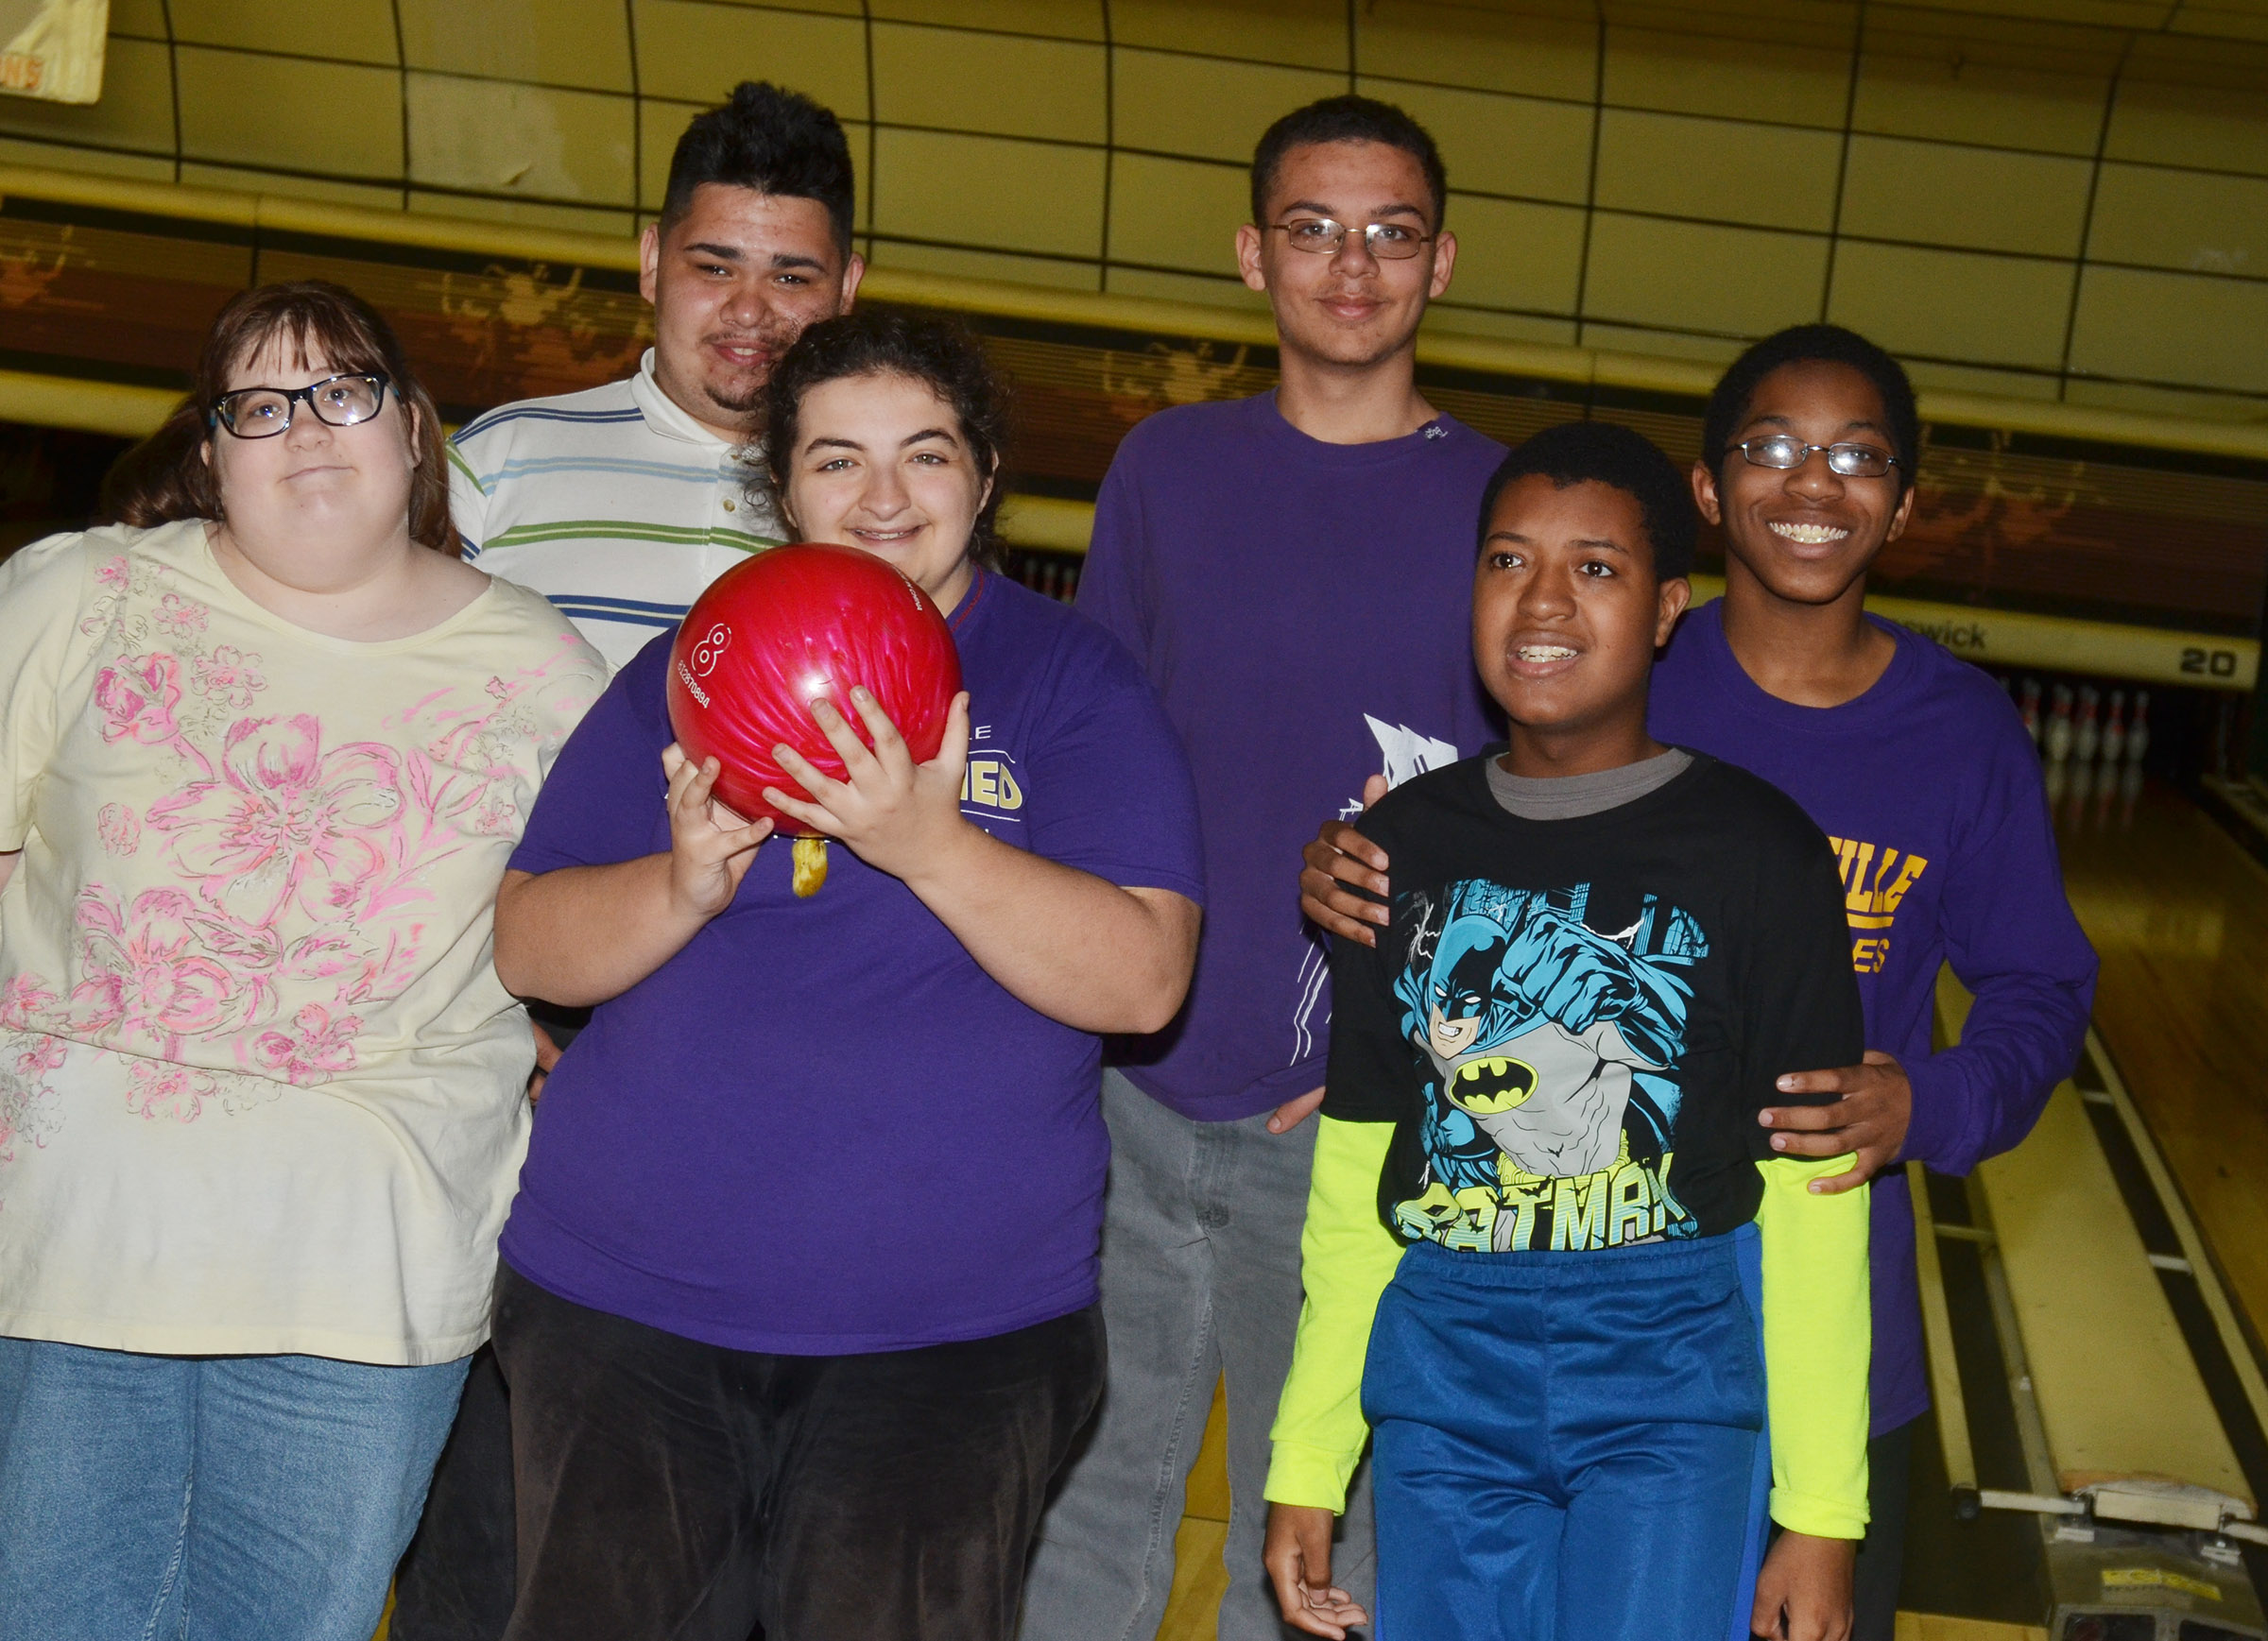 CHS exceptional education students recently had a day of fun at Phillips Lanes Bowling Alley. Pictured are, from left, front, freshman Megan Owens and sophomores Brooke Tucker and Chris Moran. Back, seniors Robert Tungate and Michael Porter and sophomore Travis Nash.